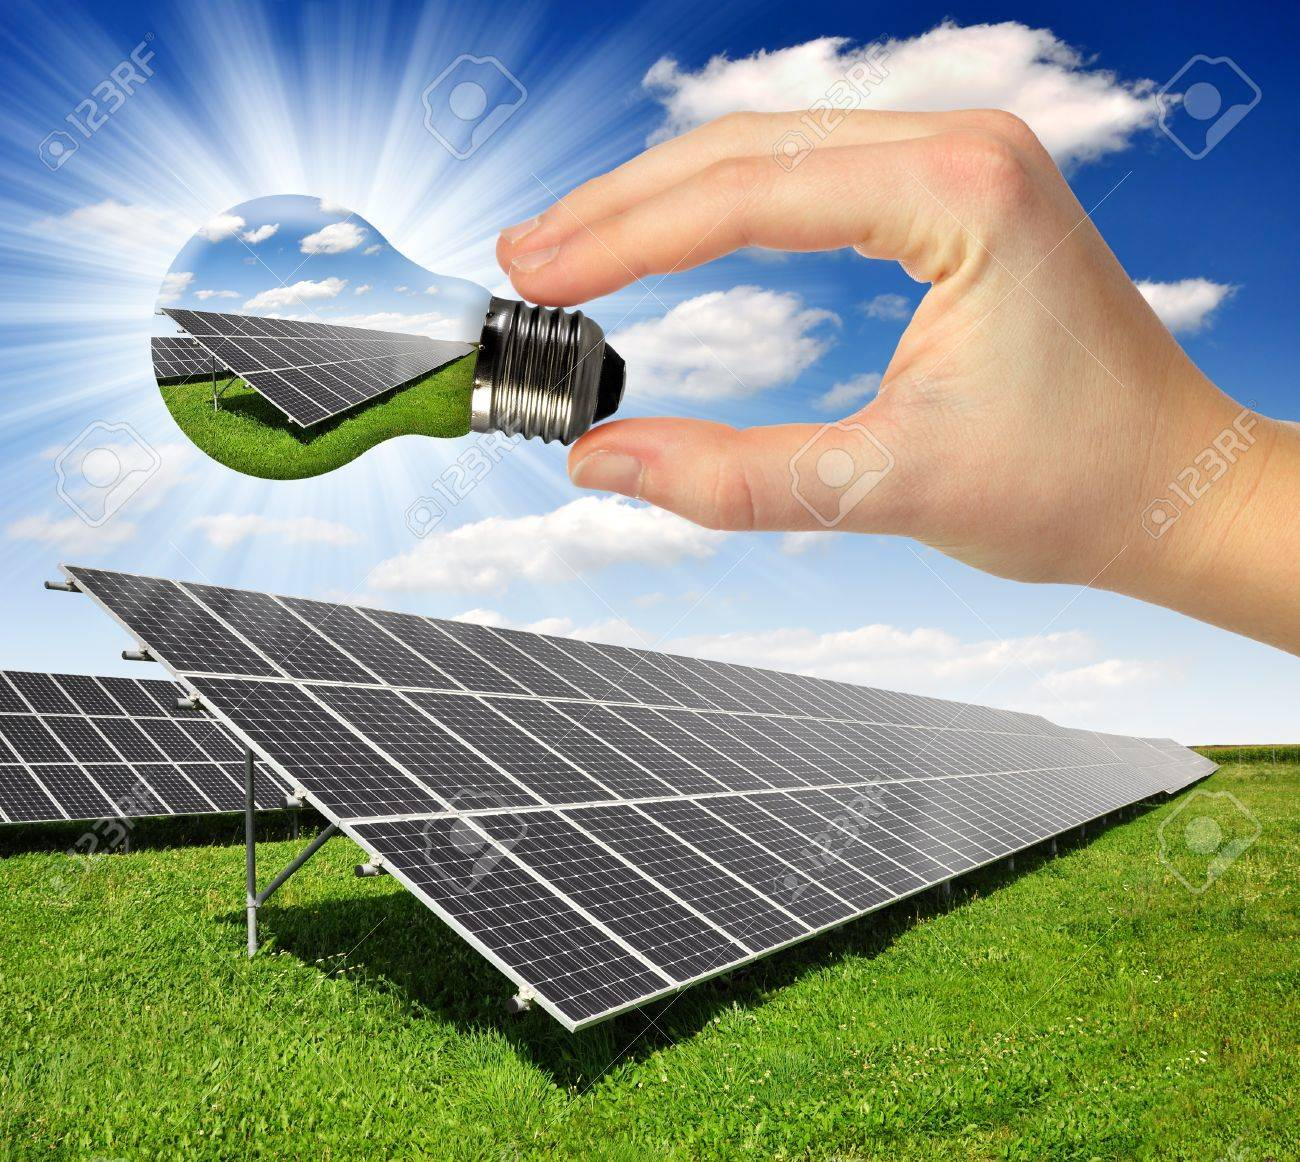 Bulb with of solar panel - 14126383